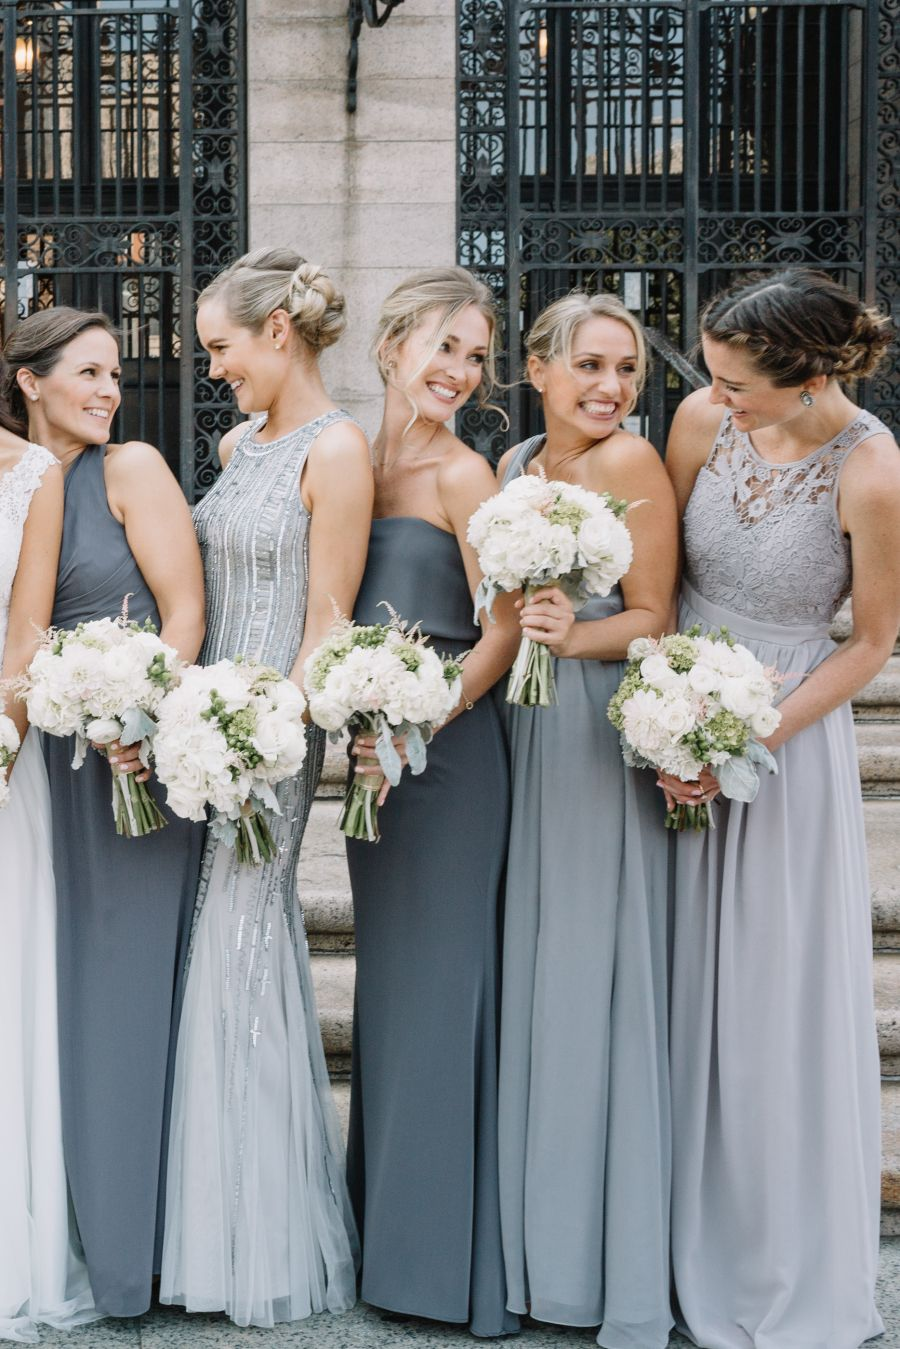 Mismatched bridesmaids in grey for a city wedding gray mismatched bridesmaids in grey for a city wedding ombrellifo Images